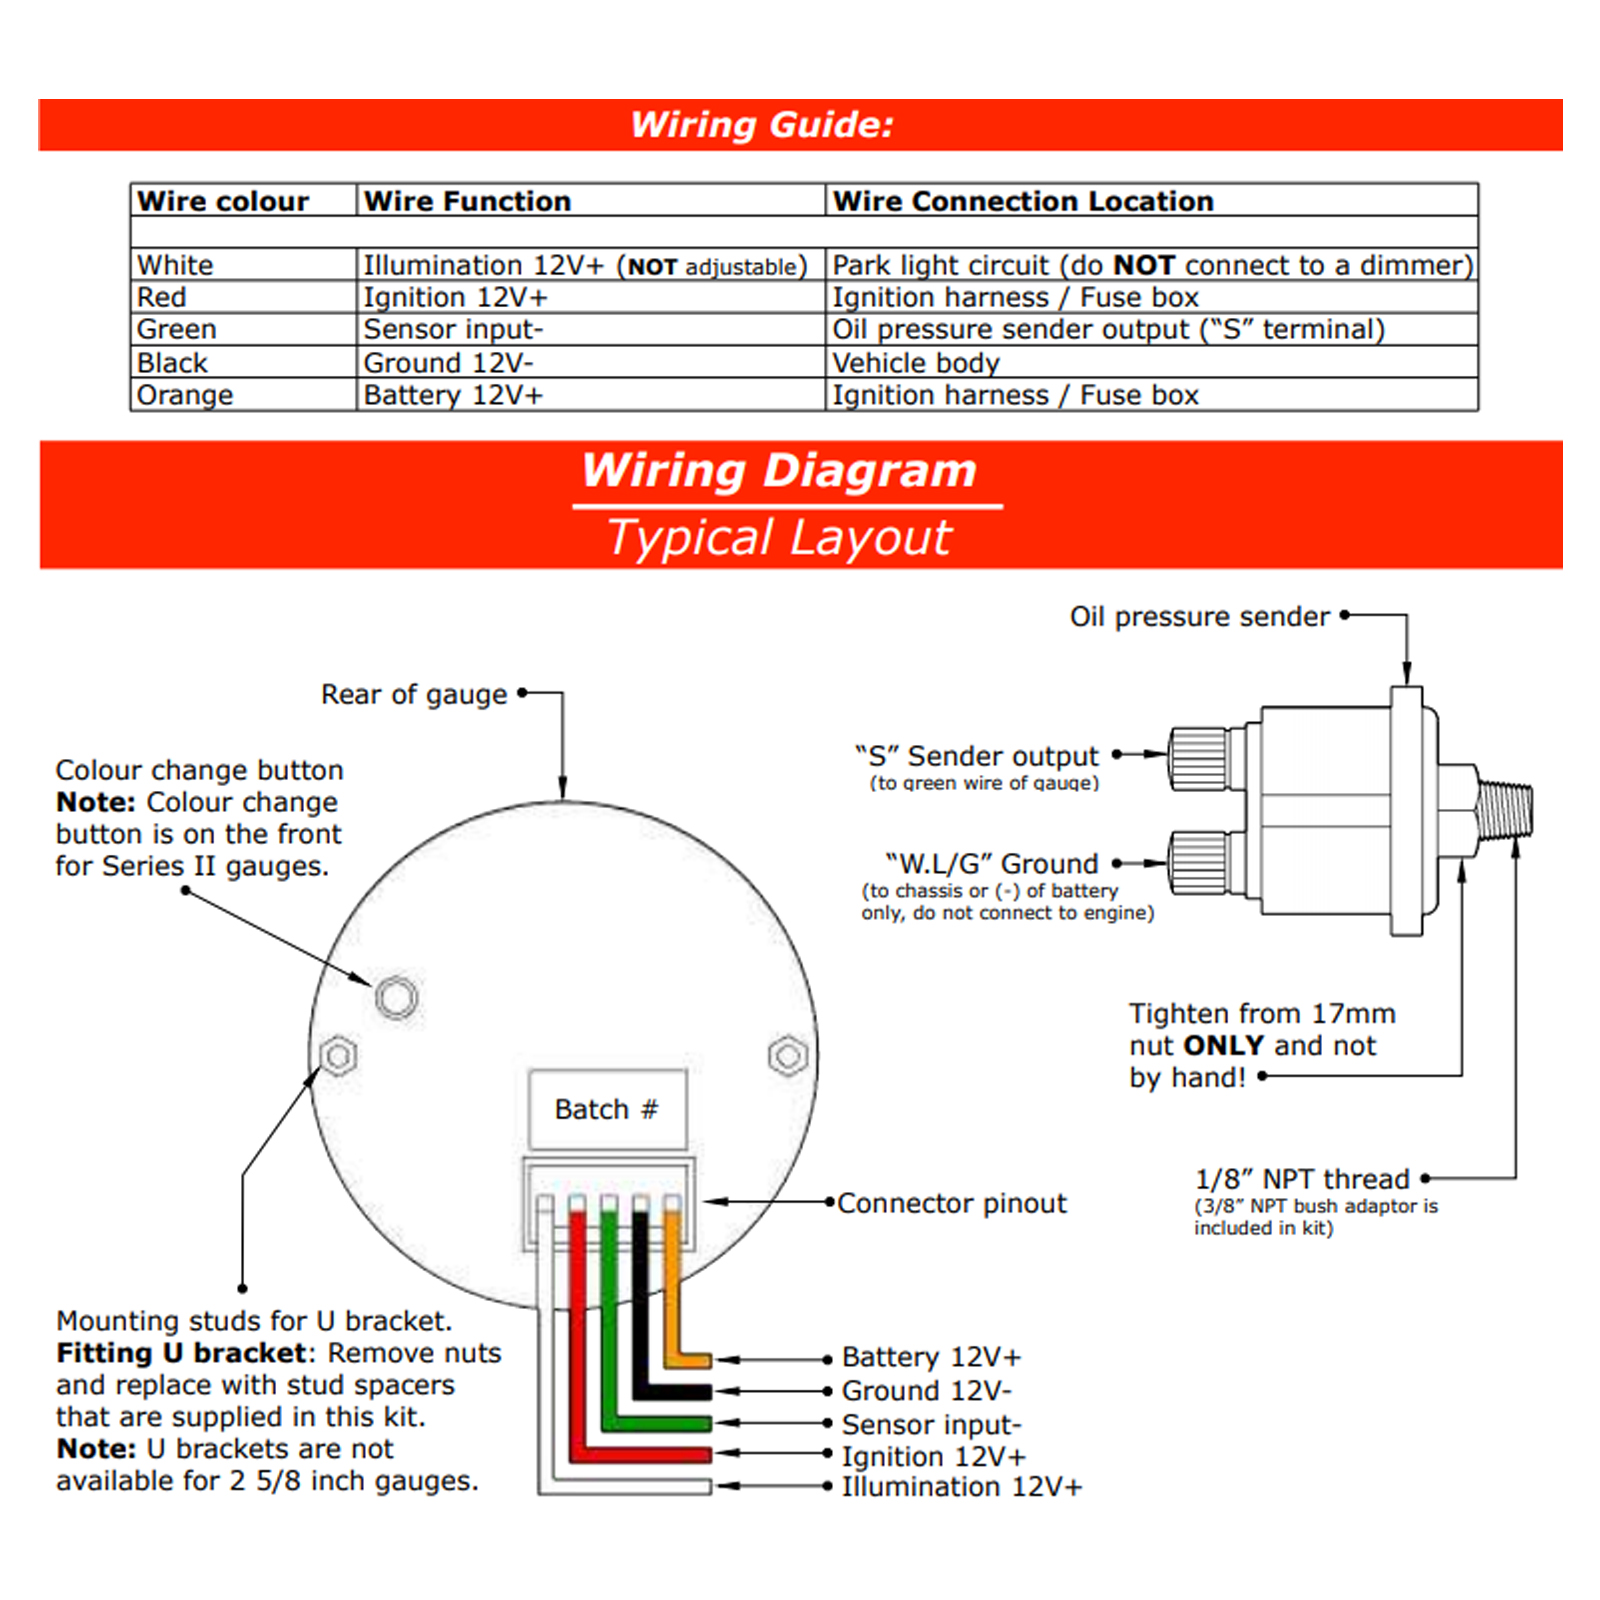 SG OP52B 696 saas water temperature gauge wiring diagram efcaviation com temperature gauge wiring diagram at panicattacktreatment.co